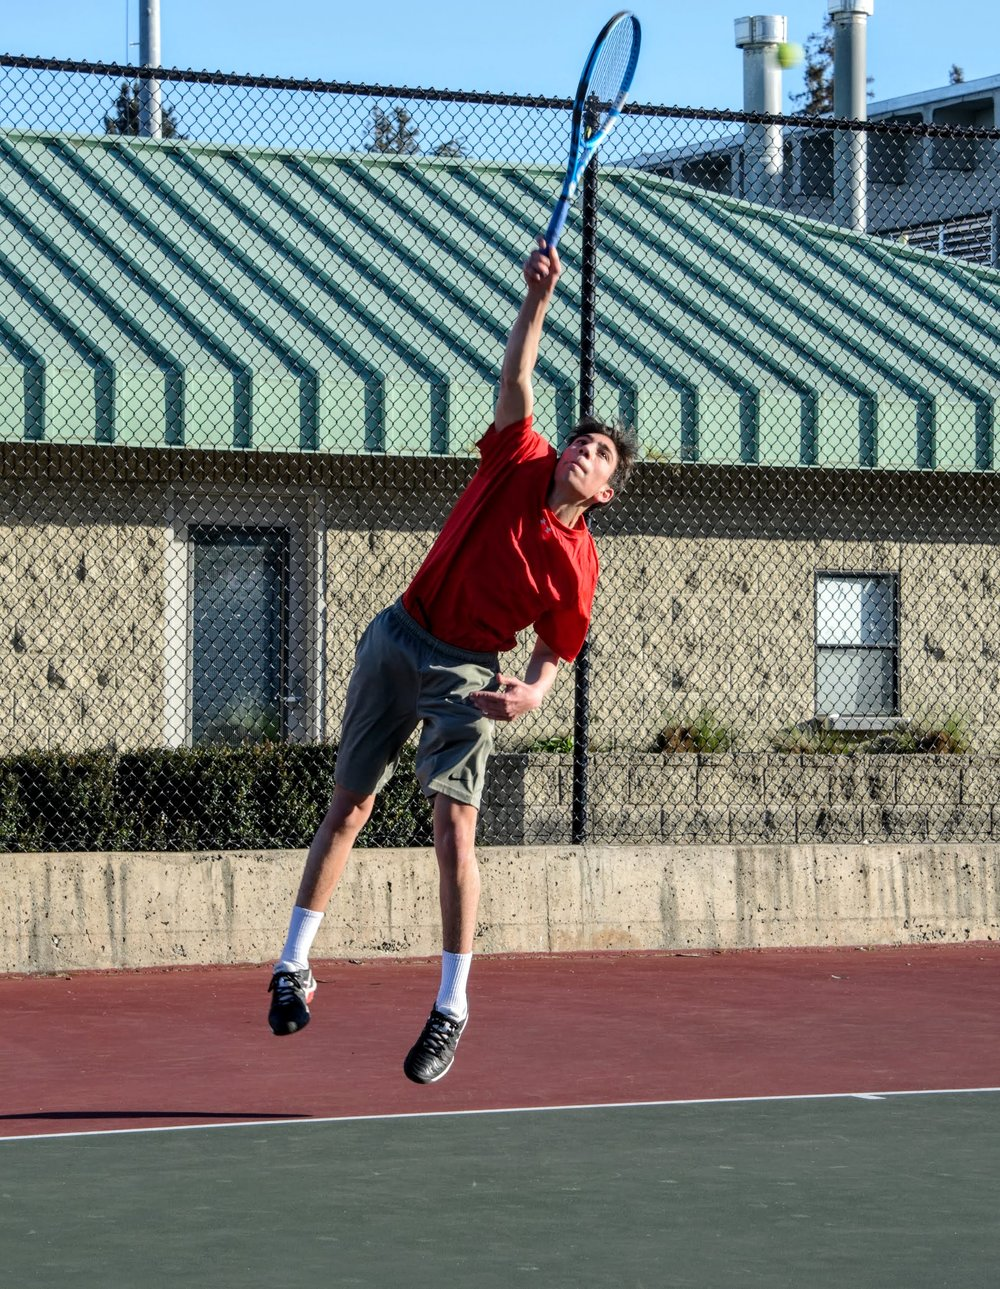 Senior Cale Goodman, the No. 1 singles player last year, returns a ball at a Feb. 27 home game.